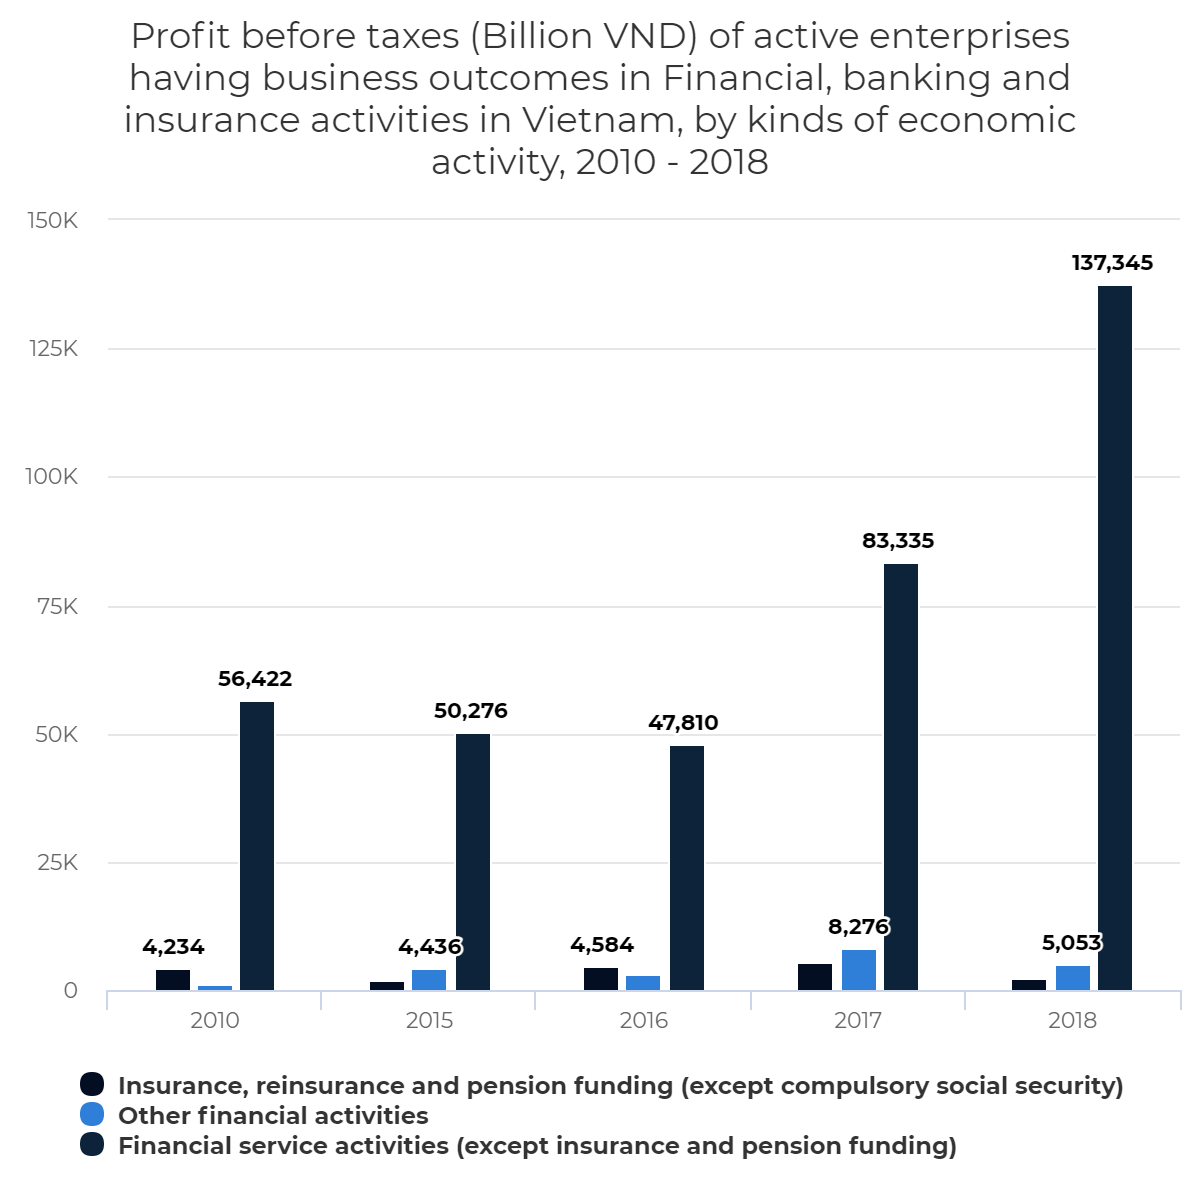 Profit before taxes (Billion VND) of active enterprises having business outcomes in Financial, banking and insurance activities in Vietnam, by kinds of economic activity, 2010 – 2018